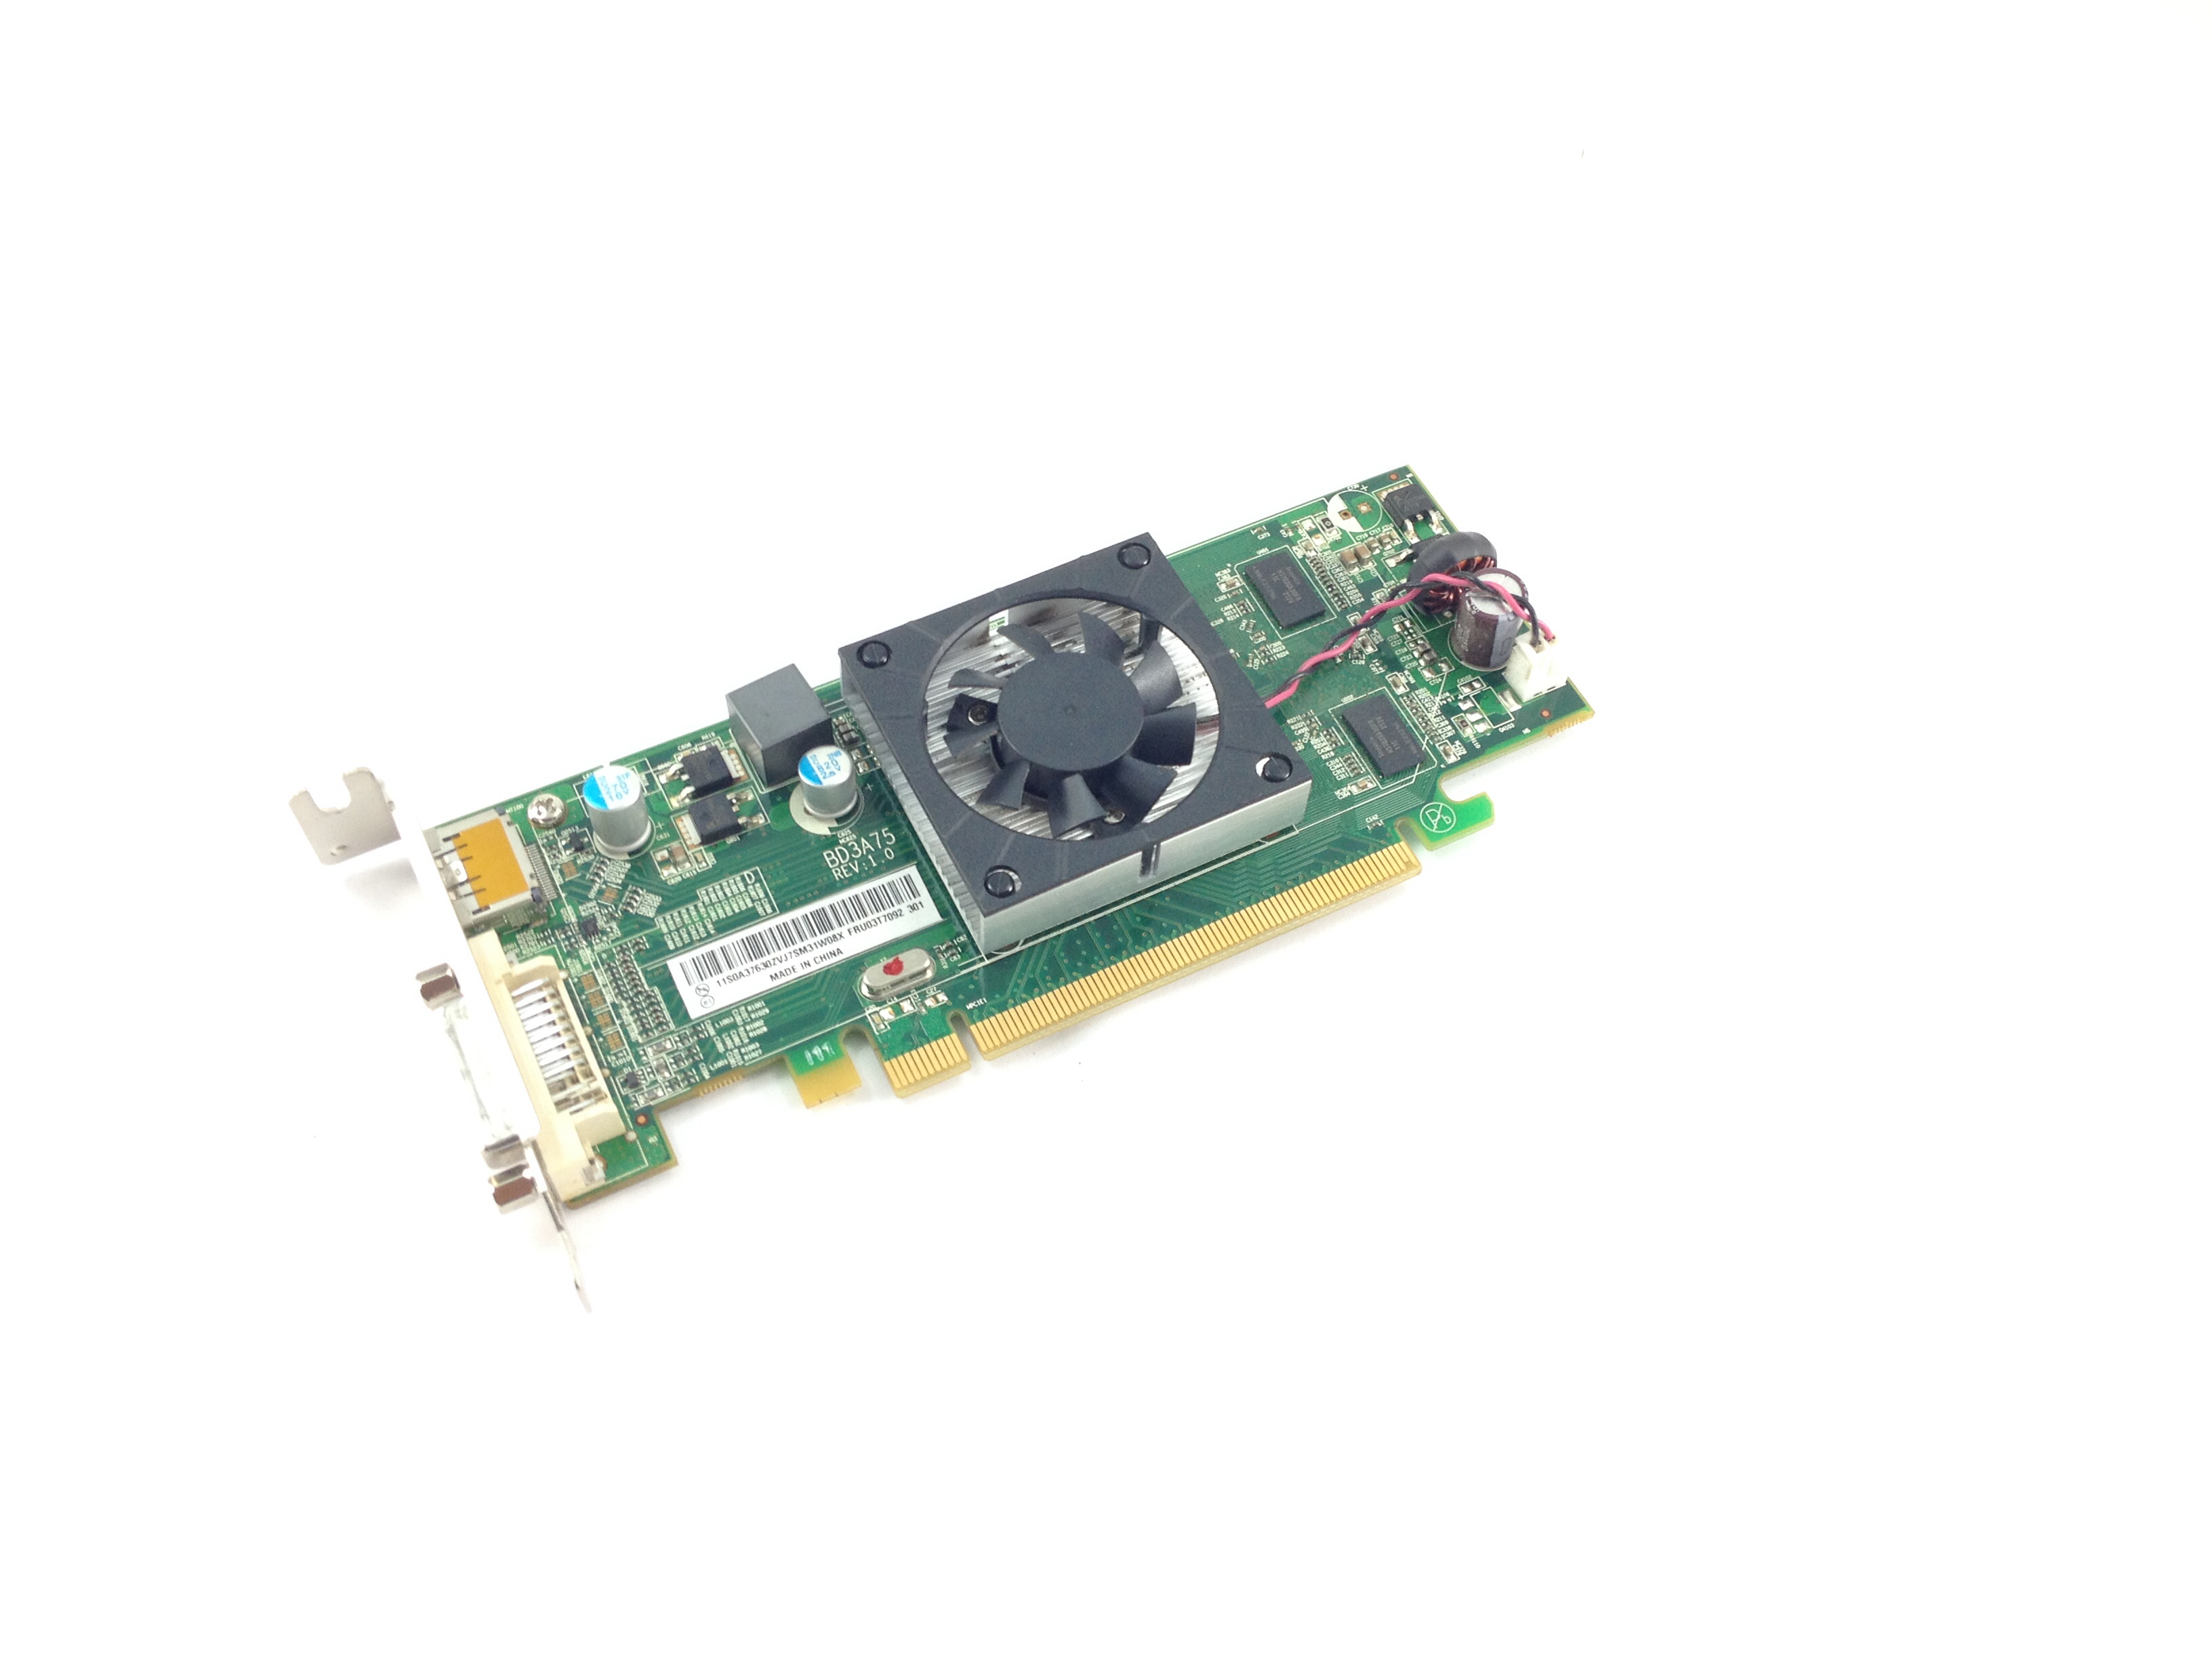 Lenovo ThinkCentre AMD Radeon Hd7450 1GB PCI-E Graphics Card (03T7092)